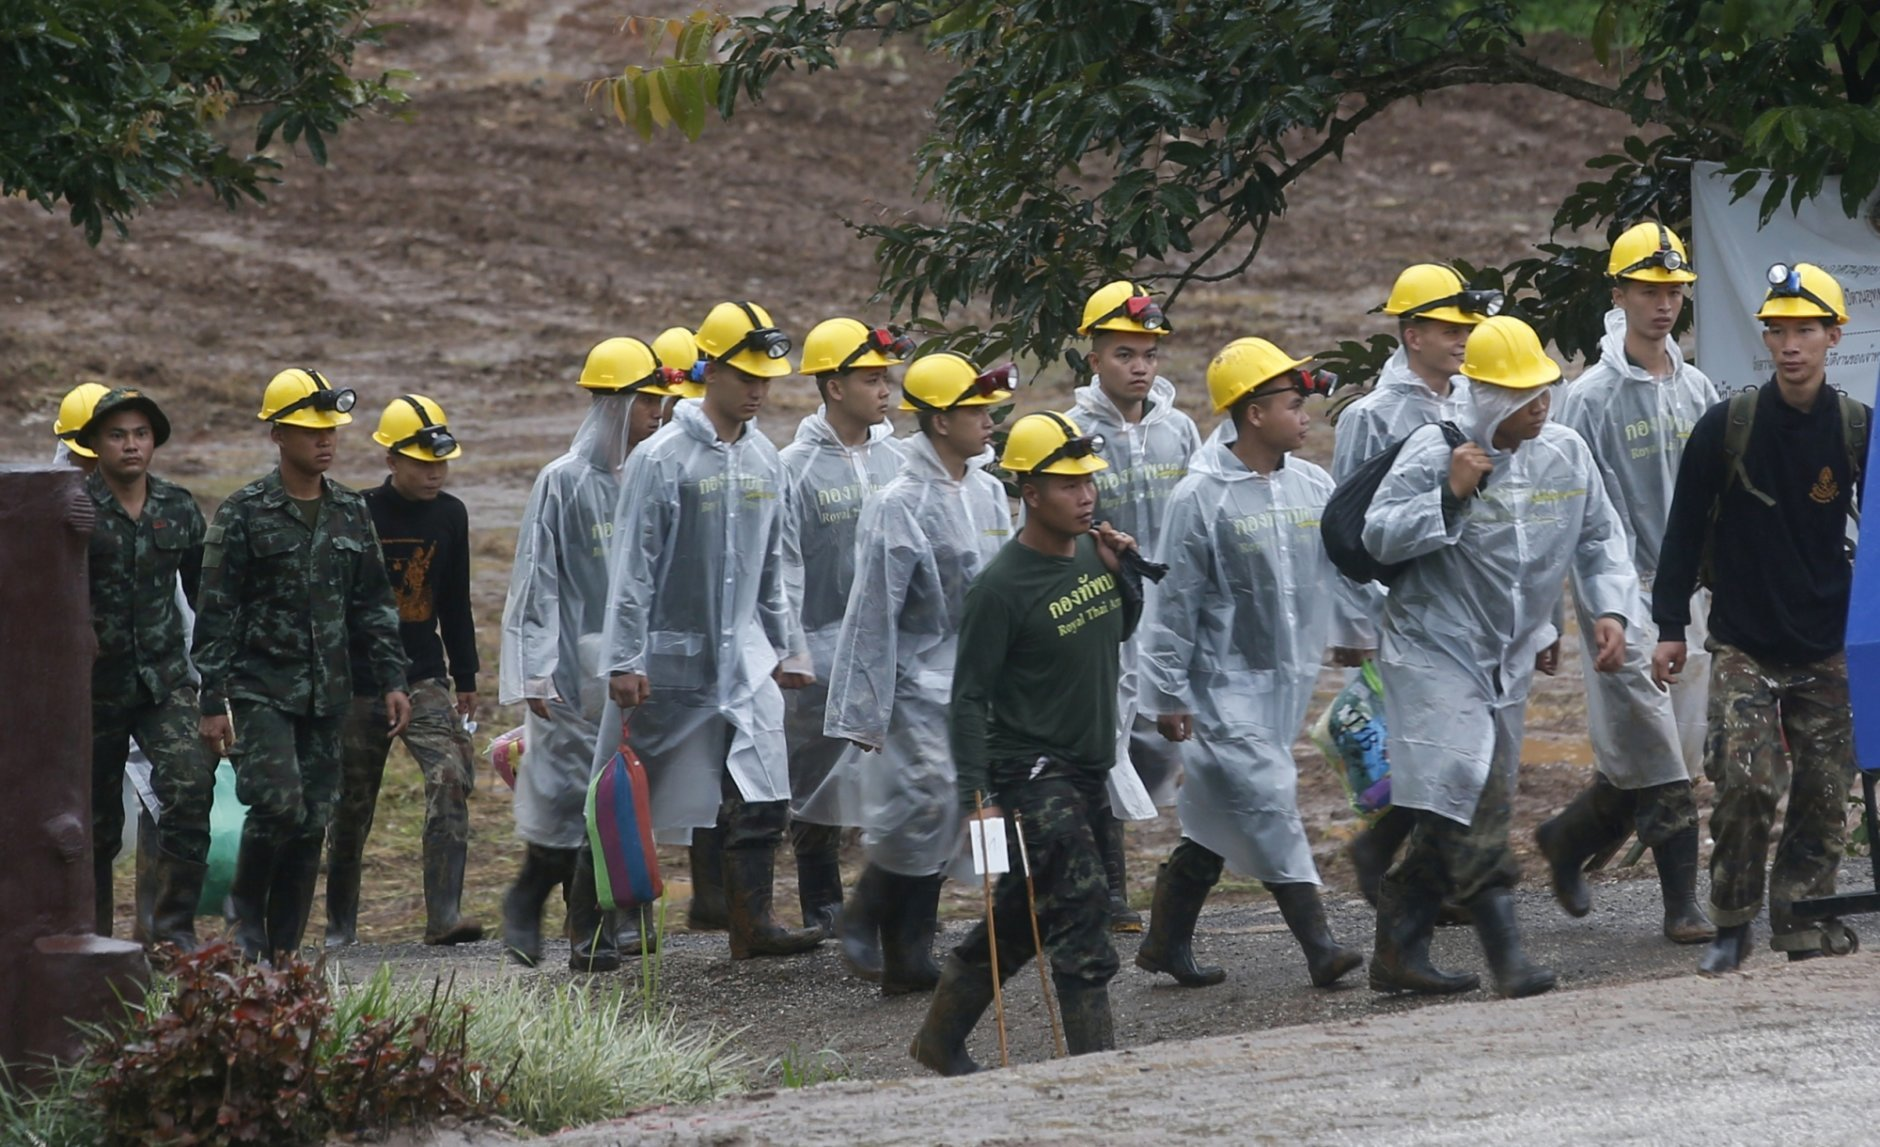 Rescuers walk toward the entrance to a cave complex where five were still trapped, in Mae Sai, Chiang Rai province, northern Thailand Tuesday, July 10, 2018. The eight boys were rescued from the flooded cave. (AP Photo/Sakchai Lalit)